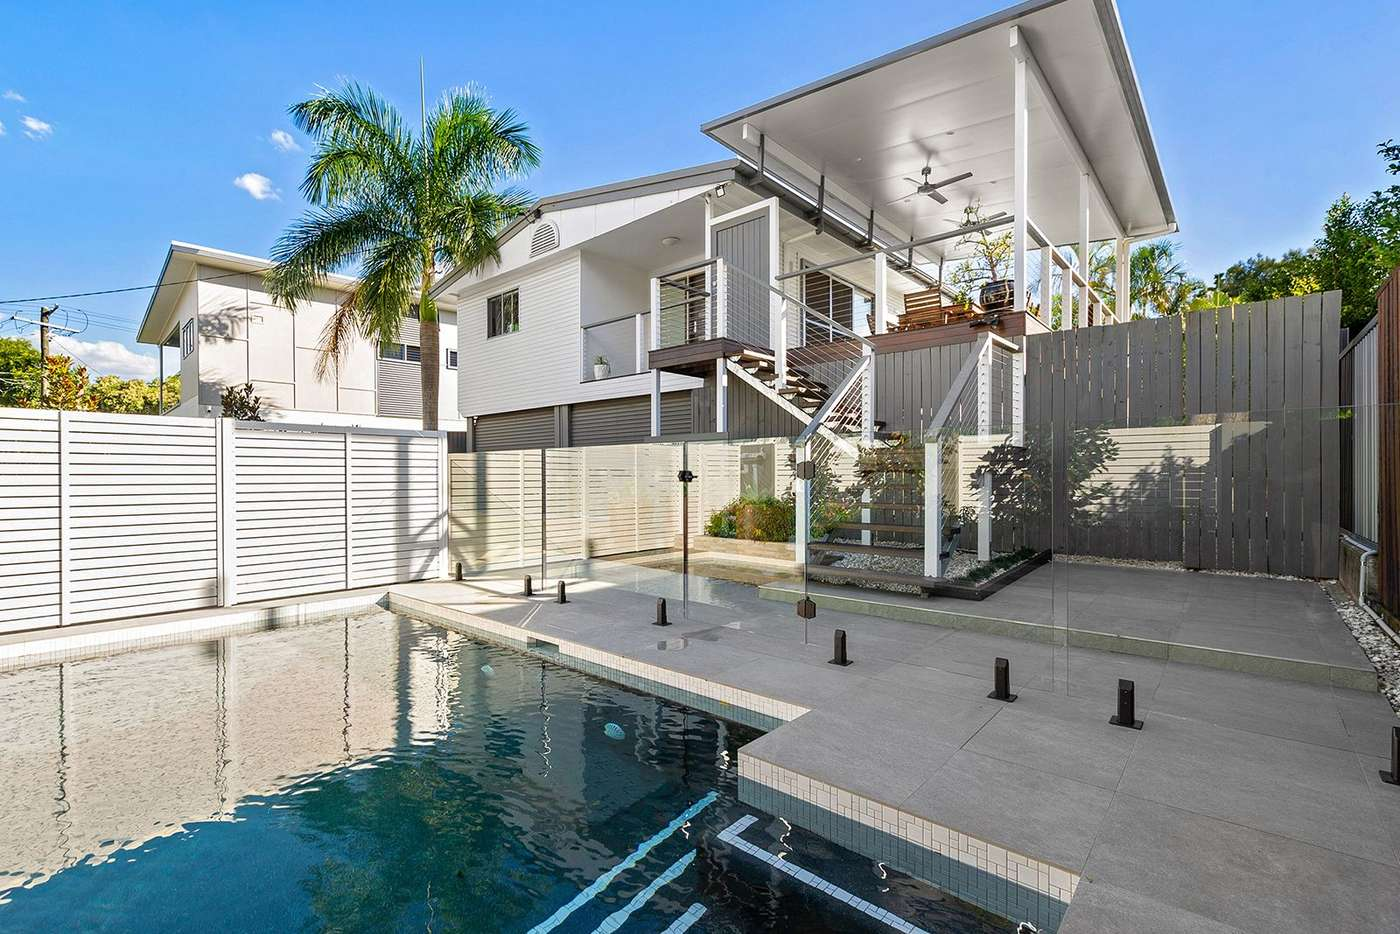 Main view of Homely house listing, 18 Seng Street, Graceville QLD 4075